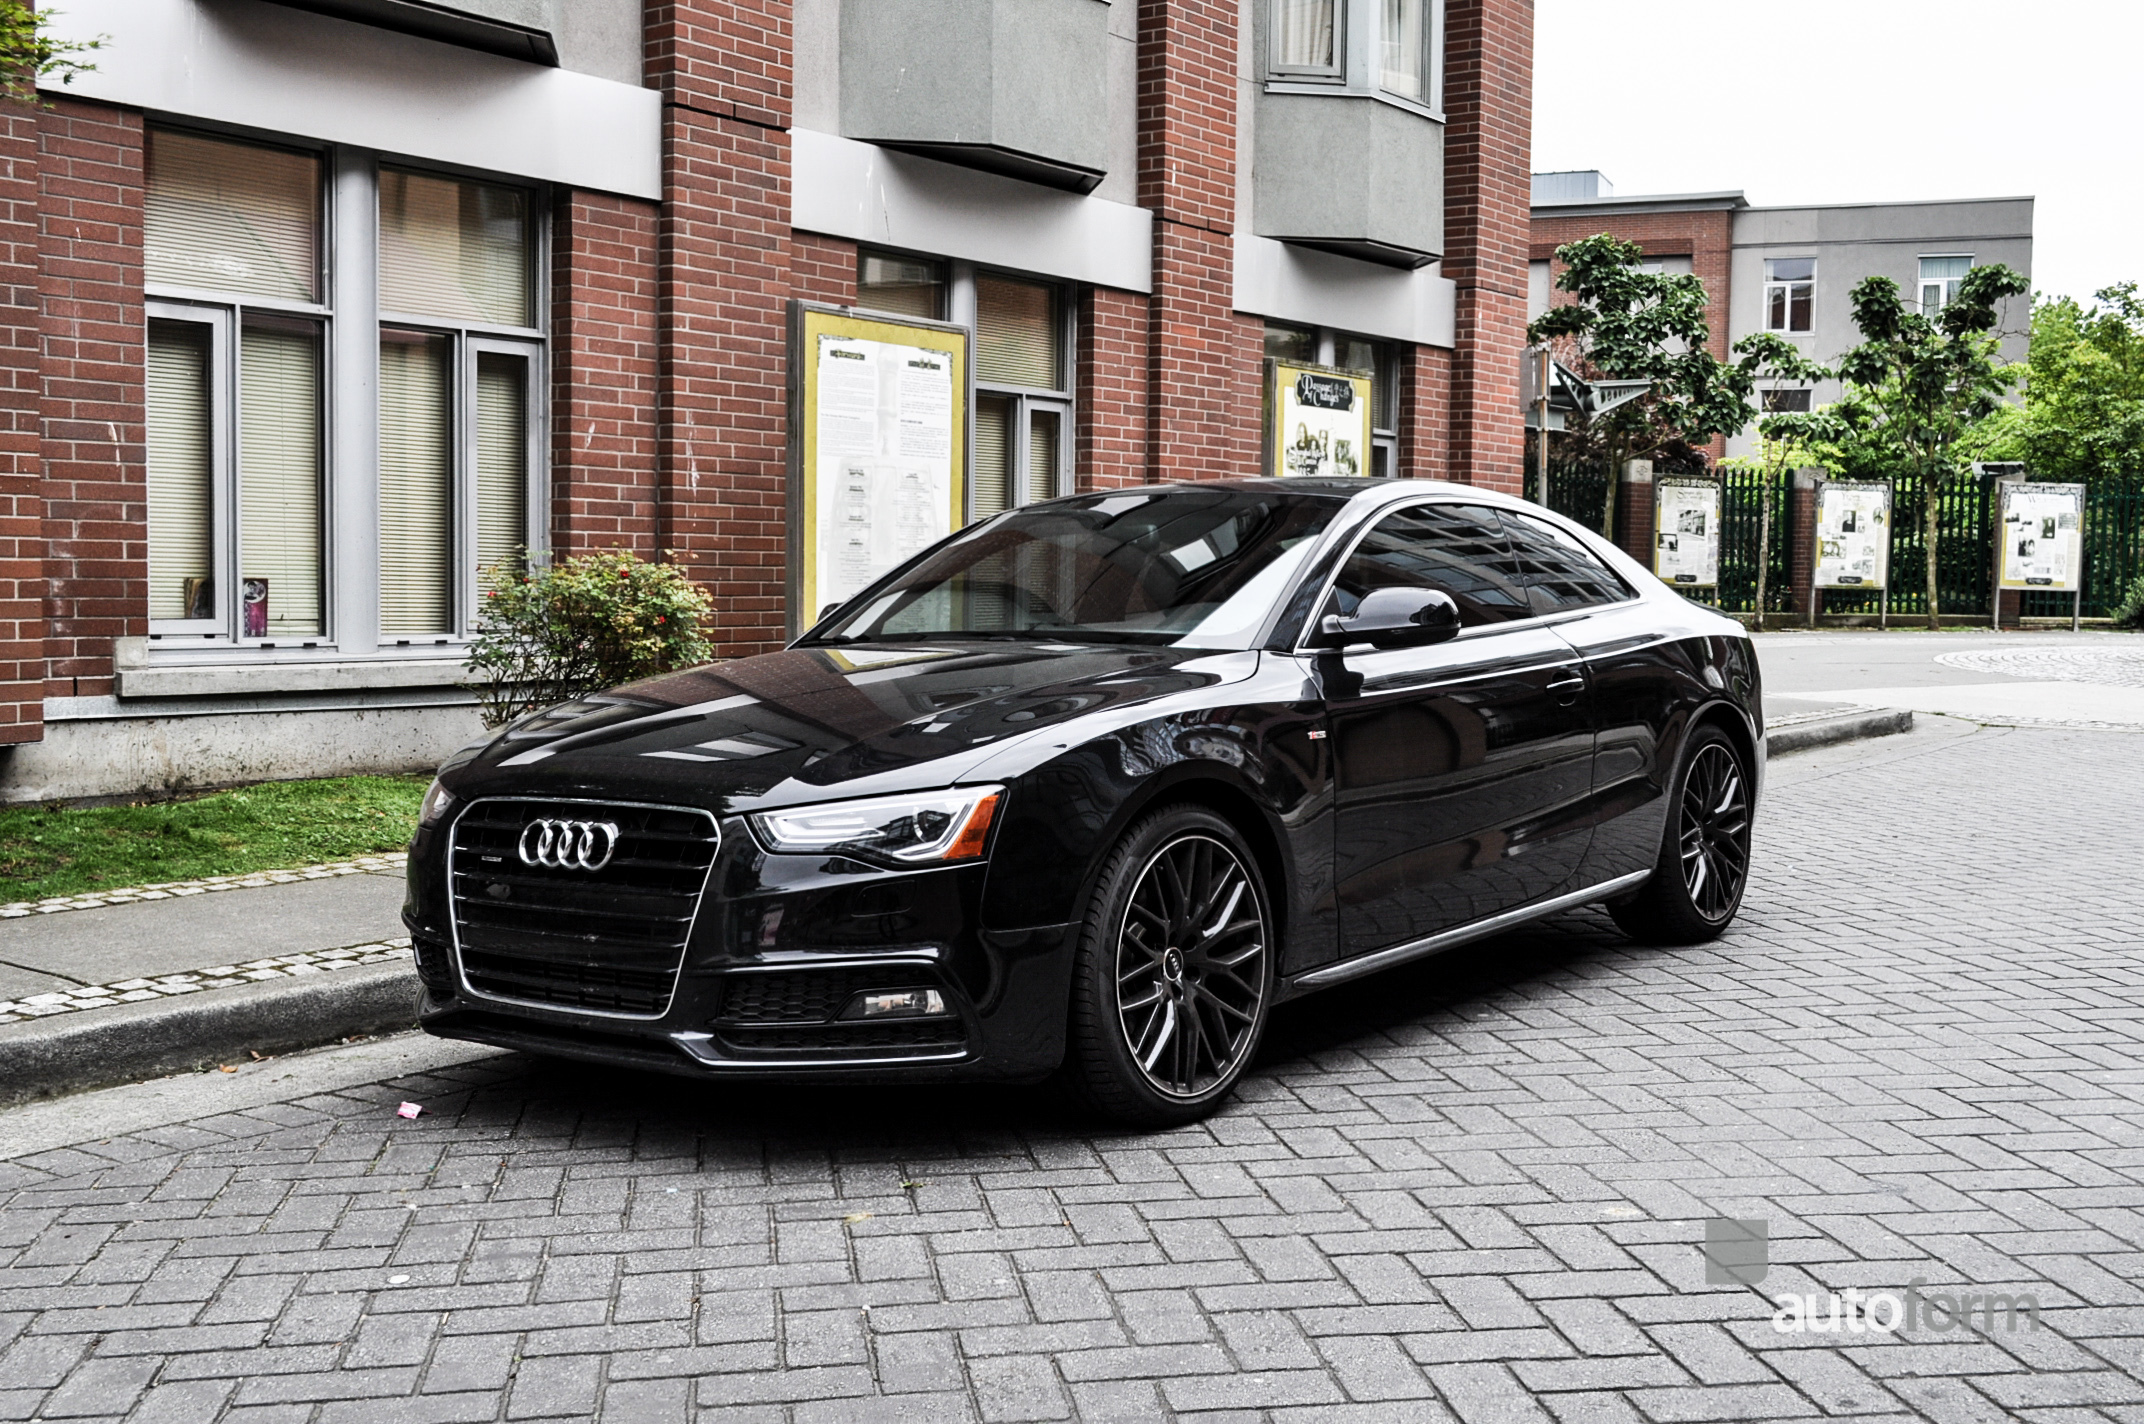 2014 audi a5 2 0 progressiv s line autoform. Black Bedroom Furniture Sets. Home Design Ideas